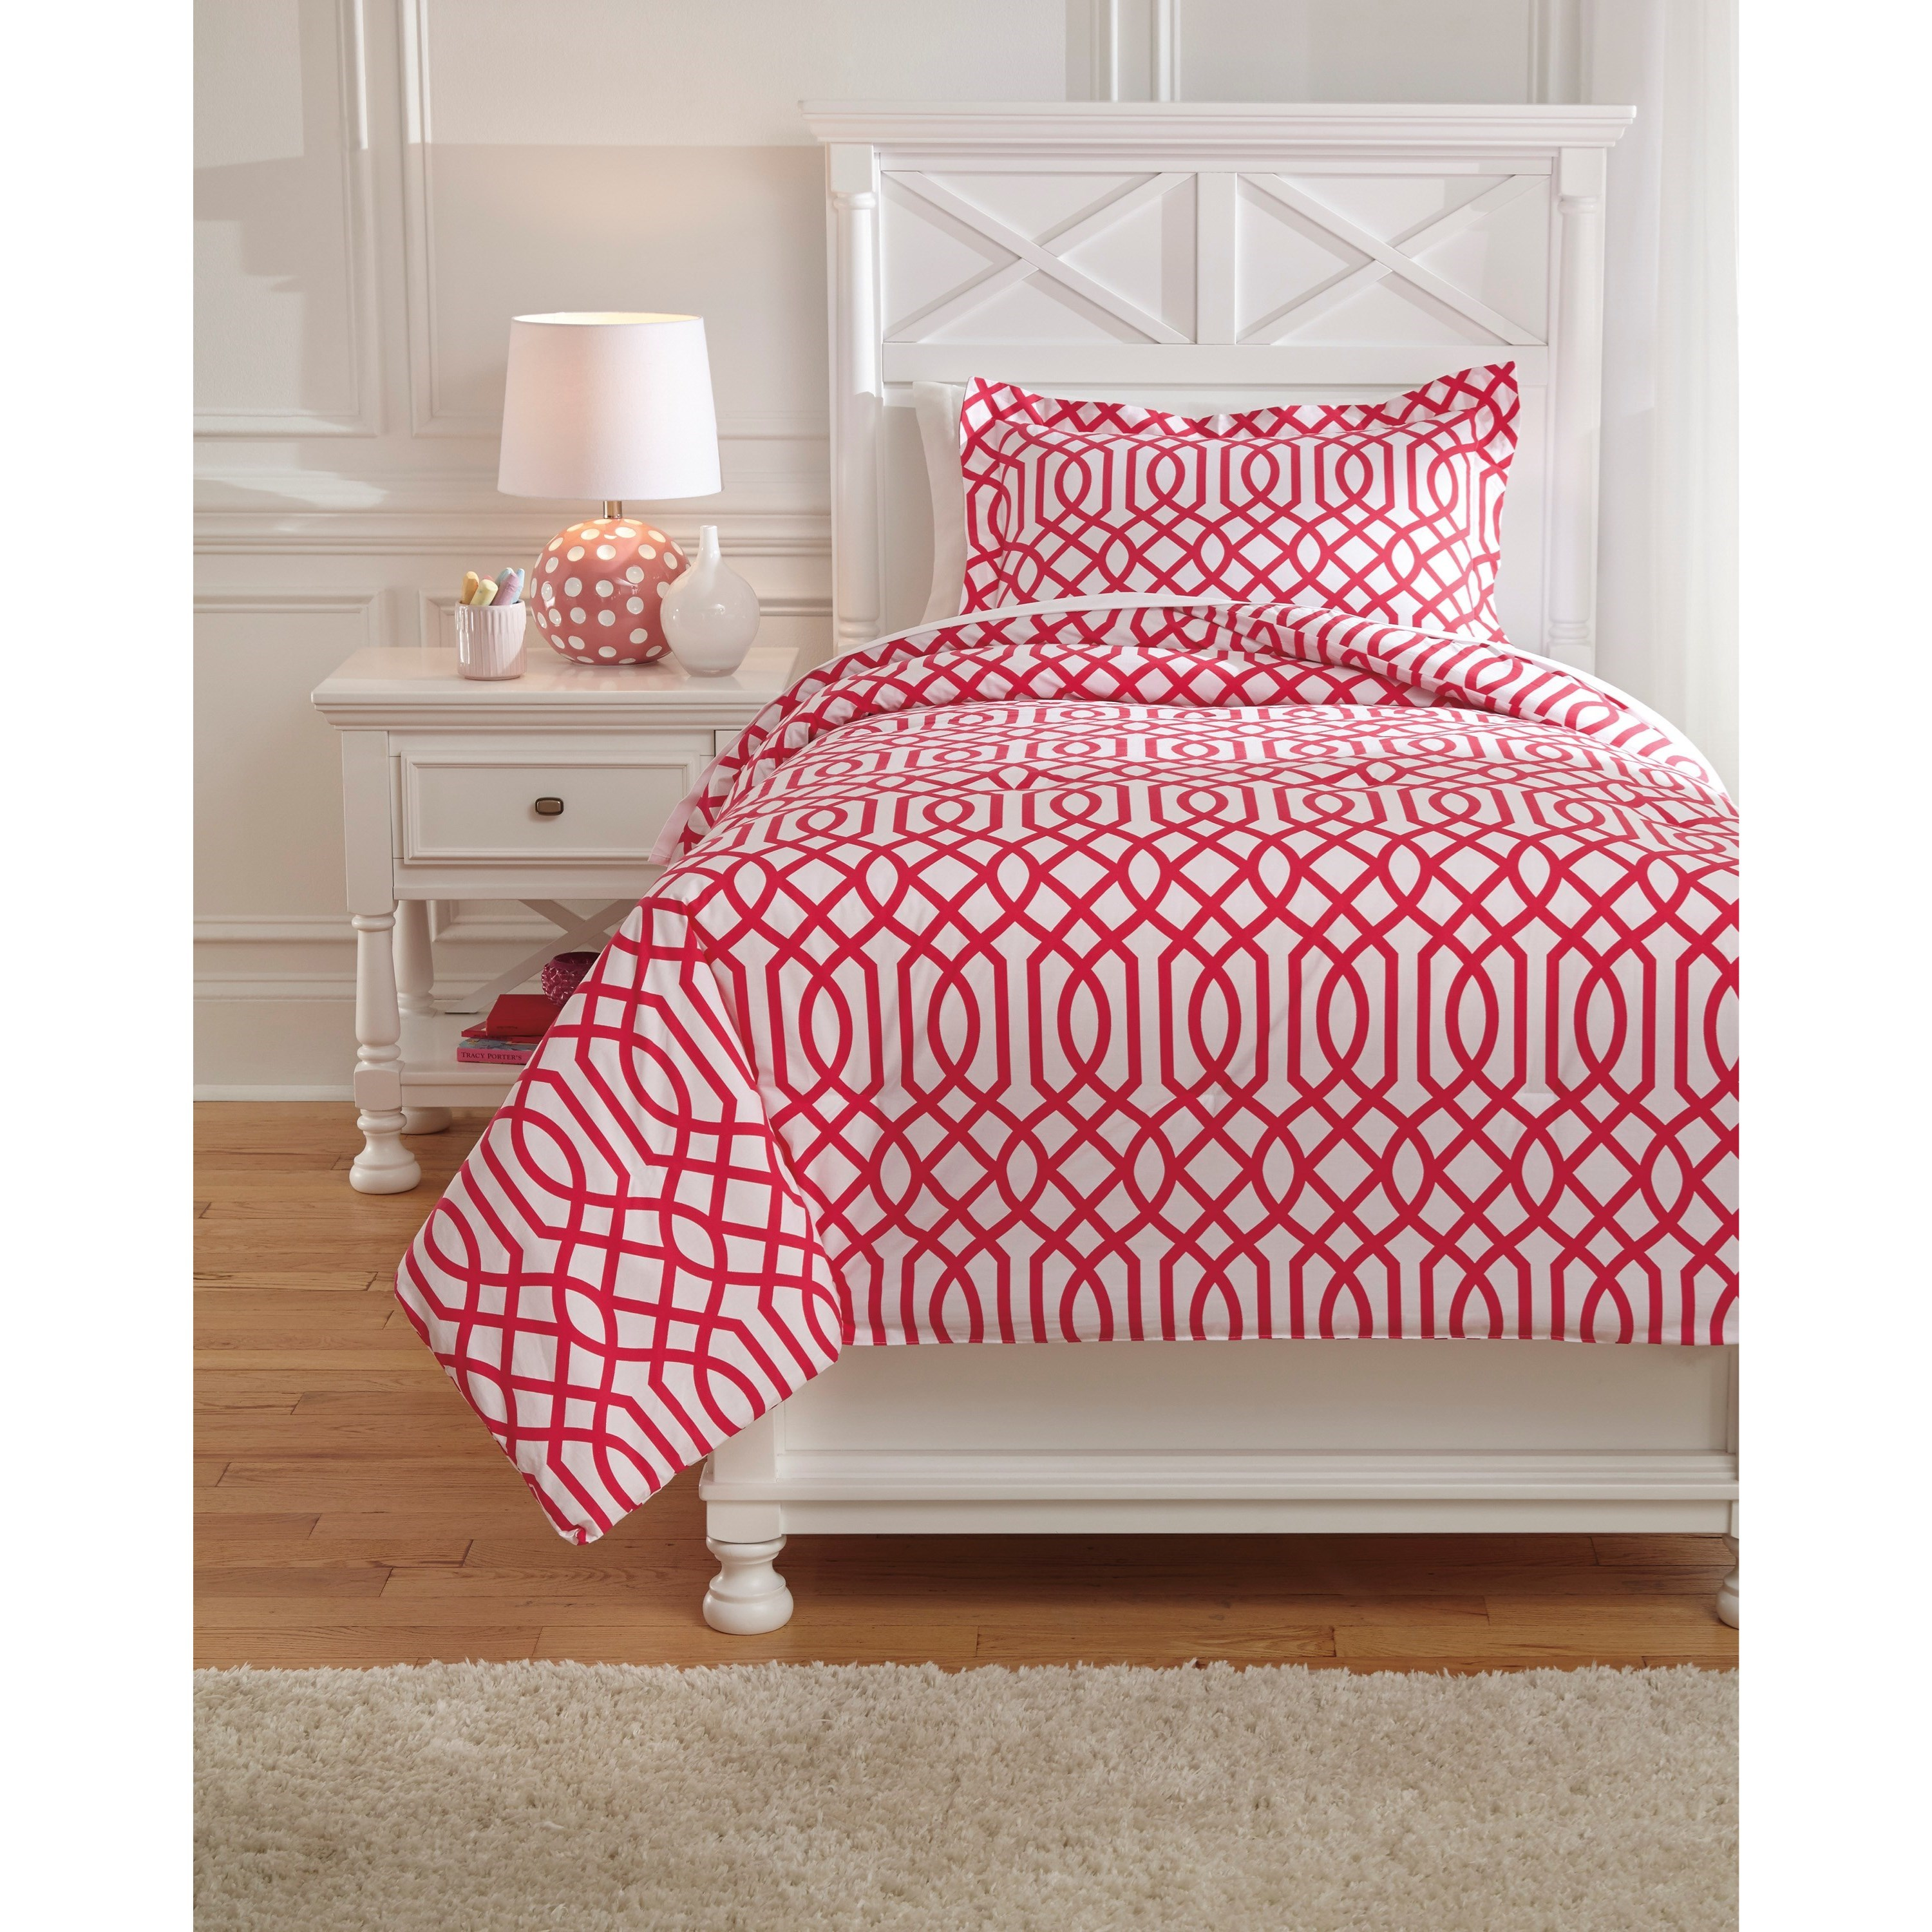 Bedding Sets Twin Loomis Fuschsia Comforter Set by Benchcraft at Virginia Furniture Market